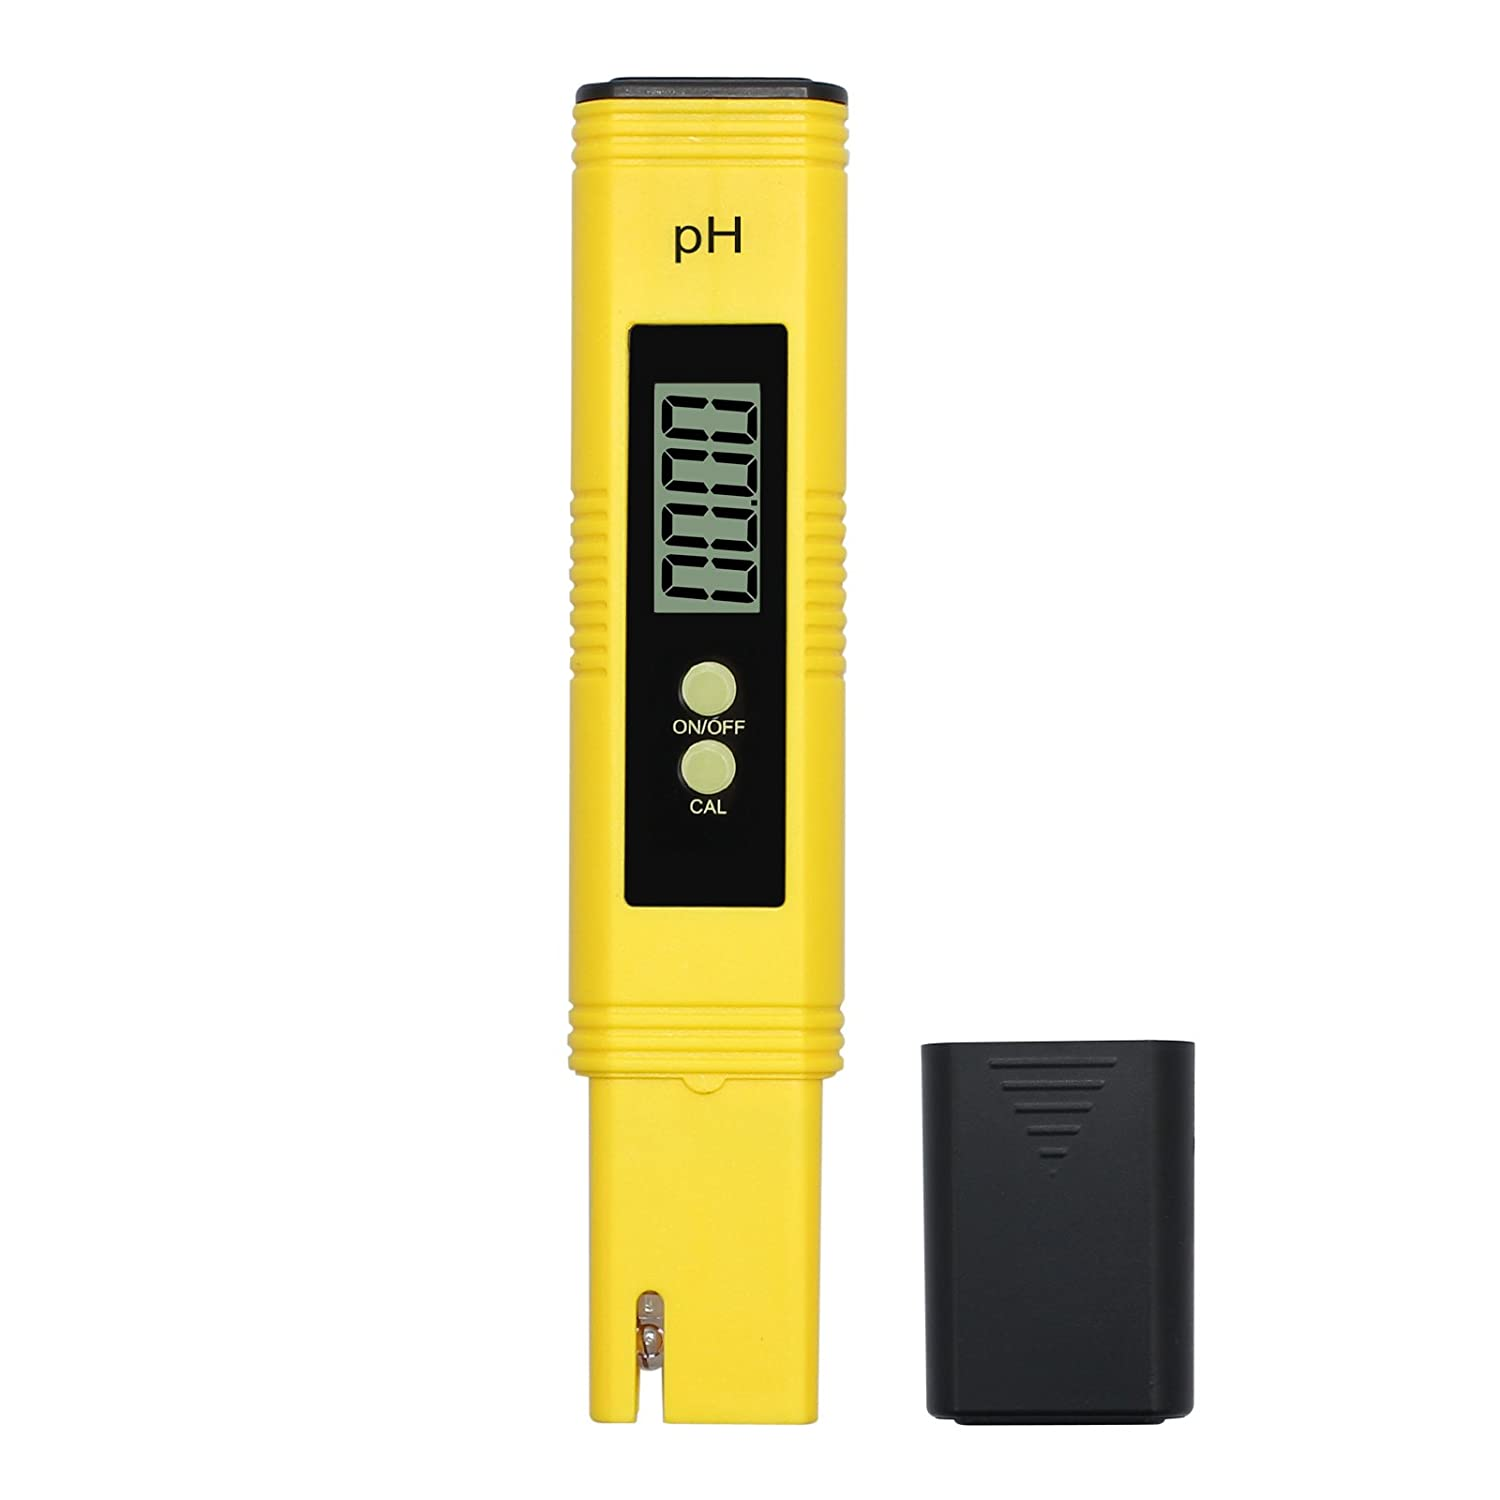 PH02 Digital PH Meter Battery Operated 0.01 Resolution Water Quality Tester for Aquarium Pool with 0.00-14.00 Measurement Range and Large LCD Display Yellow